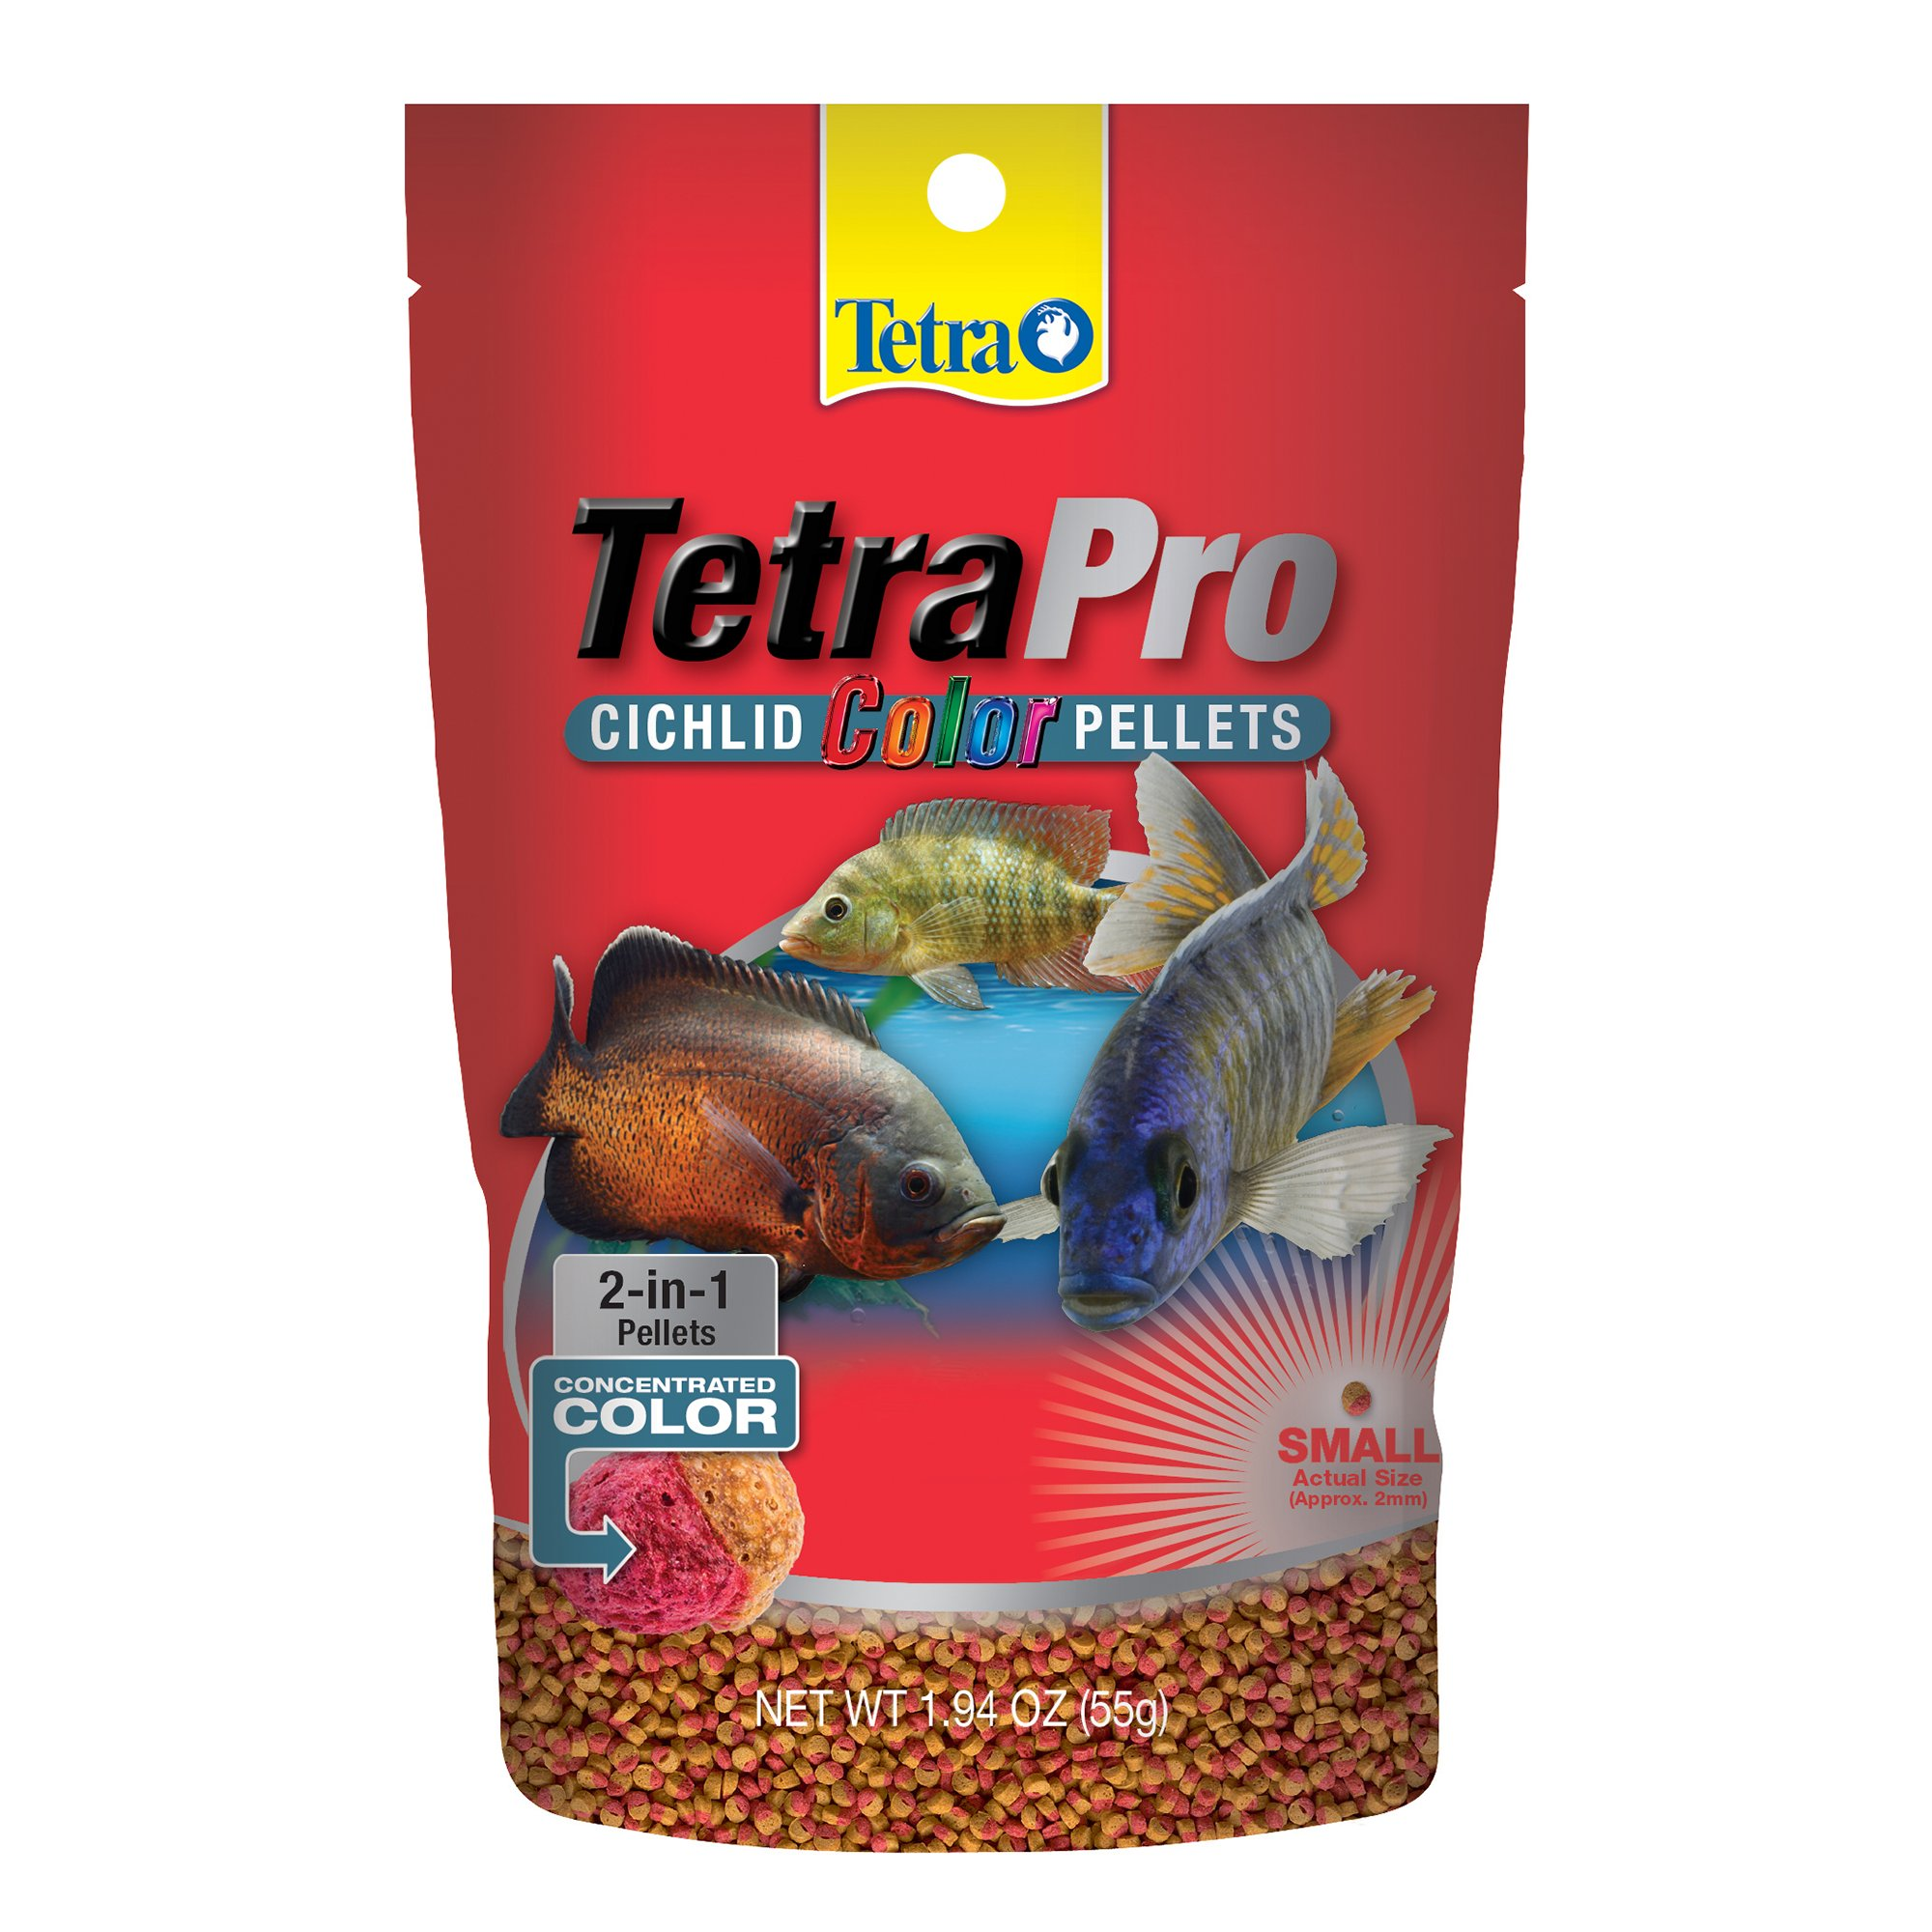 TetraColor Cichlid Food Pellets | Petco